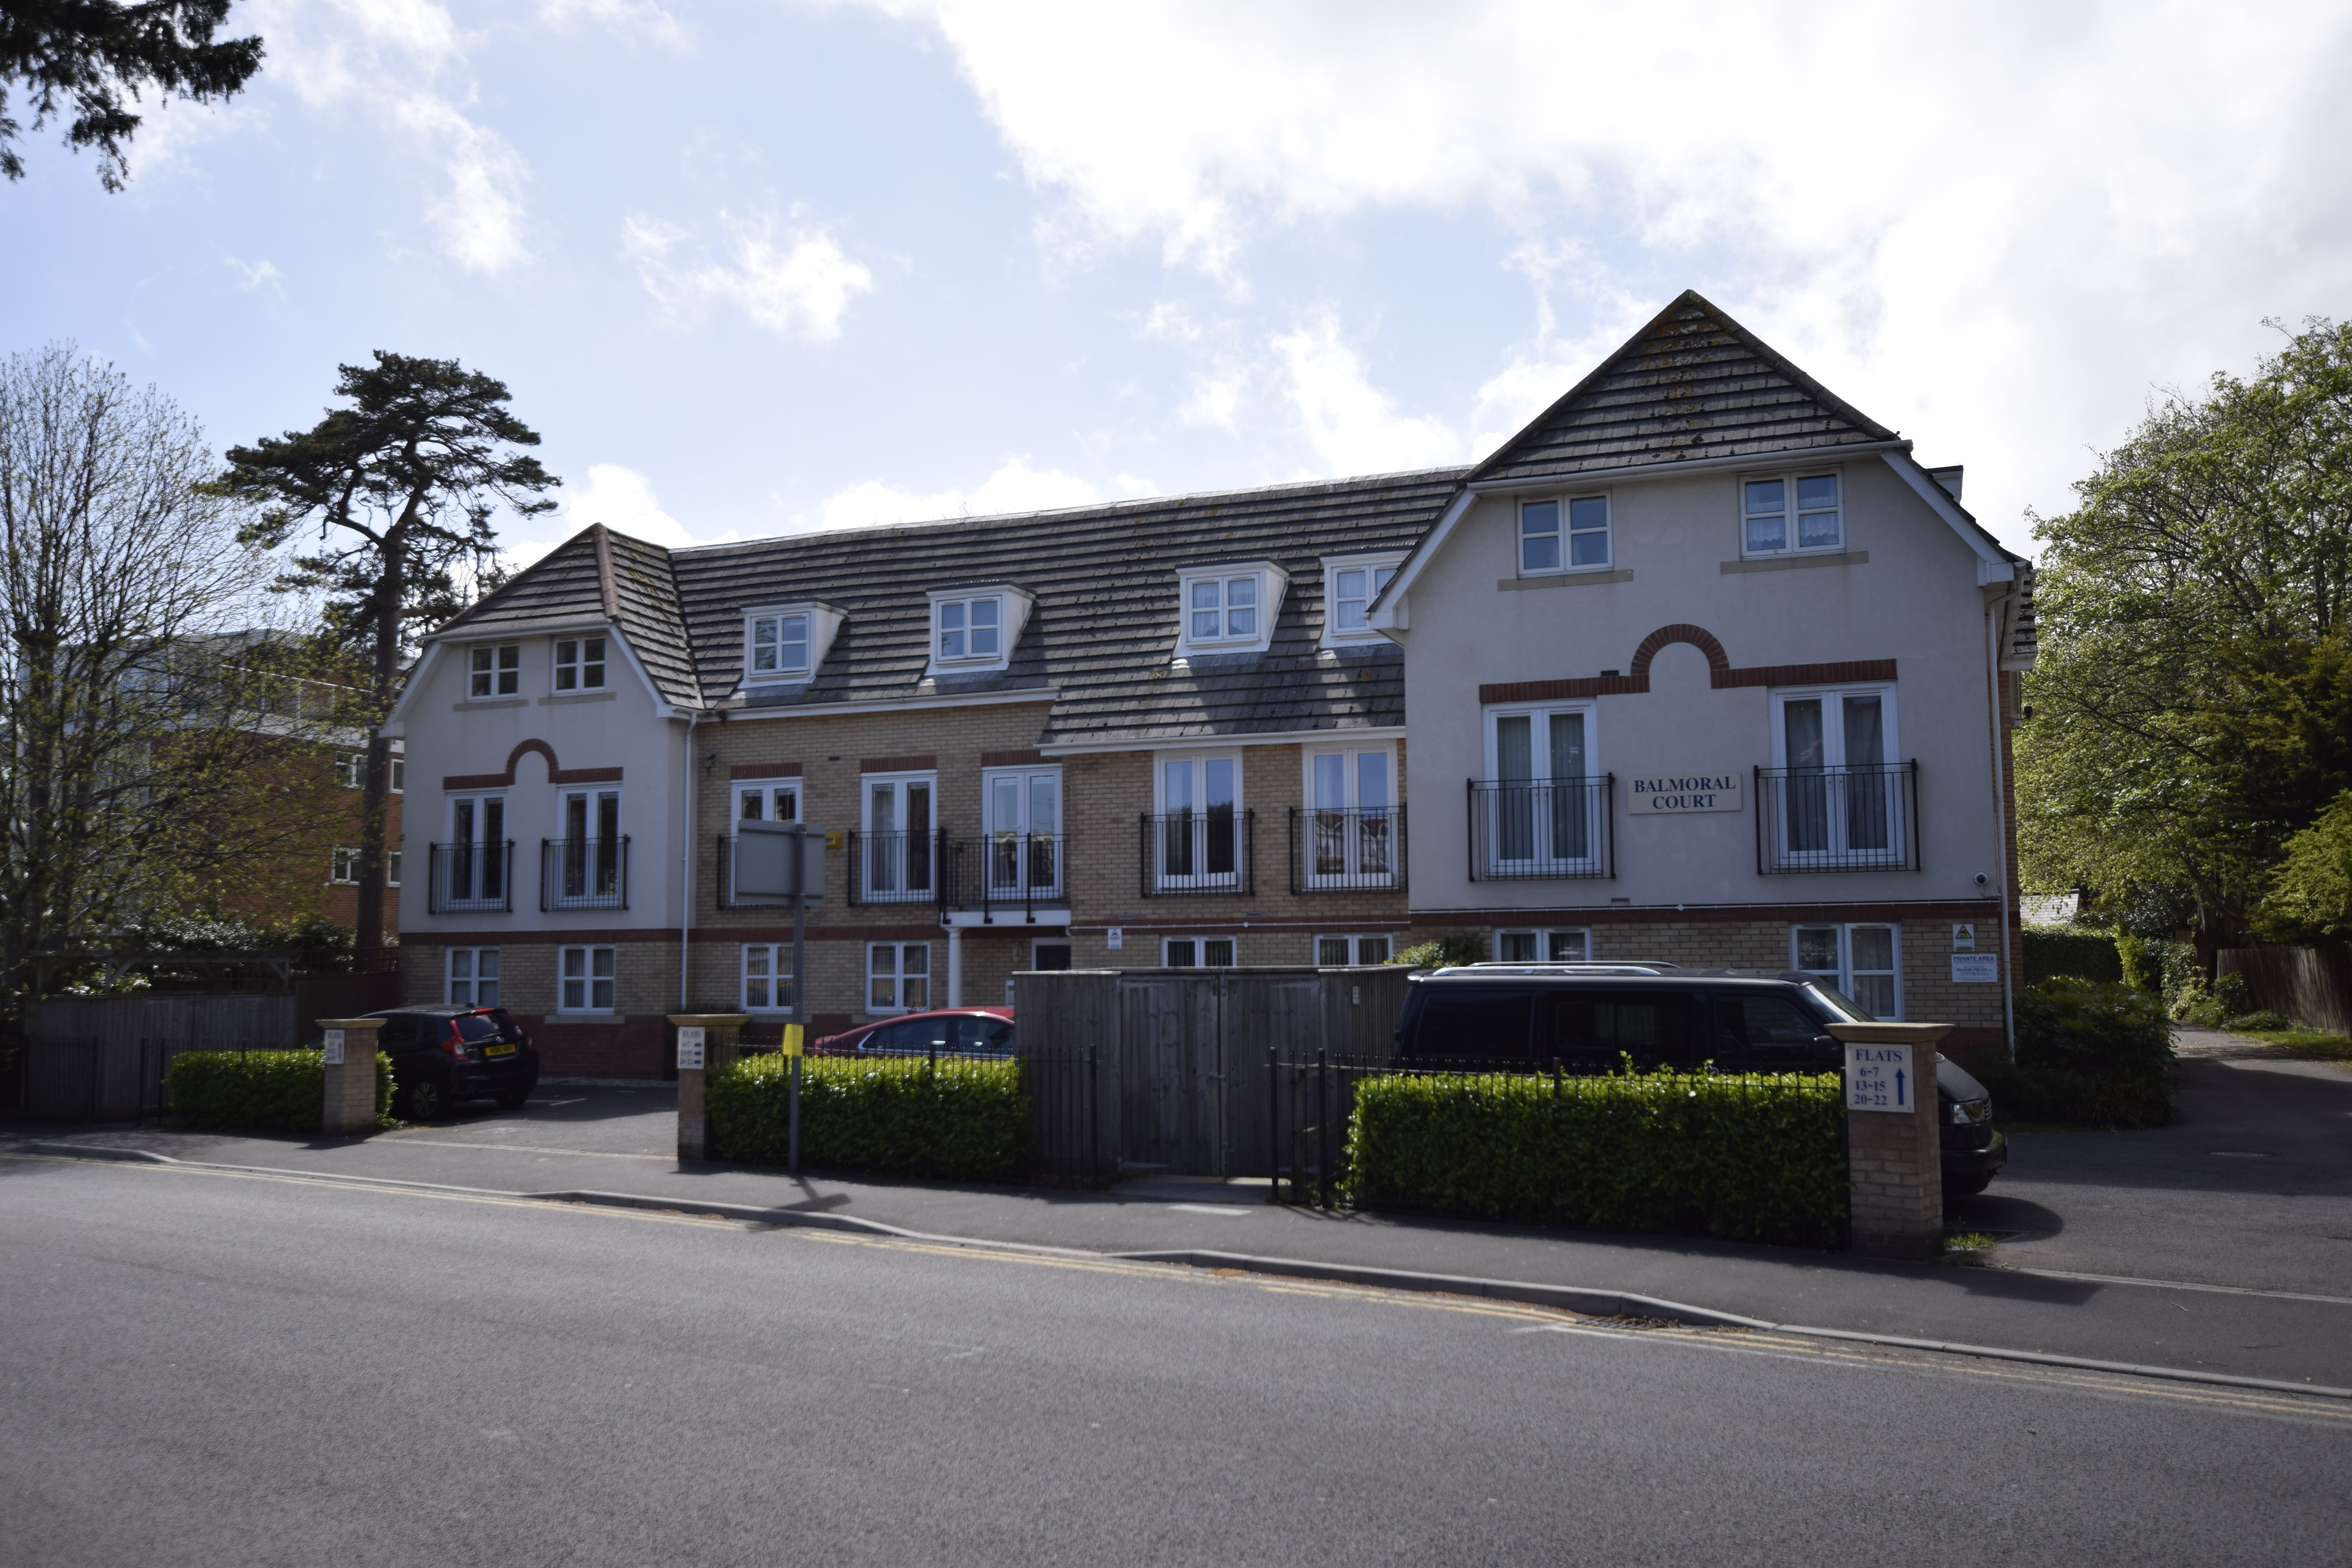 Christopher Shaw are pleased to present to the market this two bedroom BUY TO LET opportunity.Currently let to tenants paying £850pcm, this property is offered to investors only.